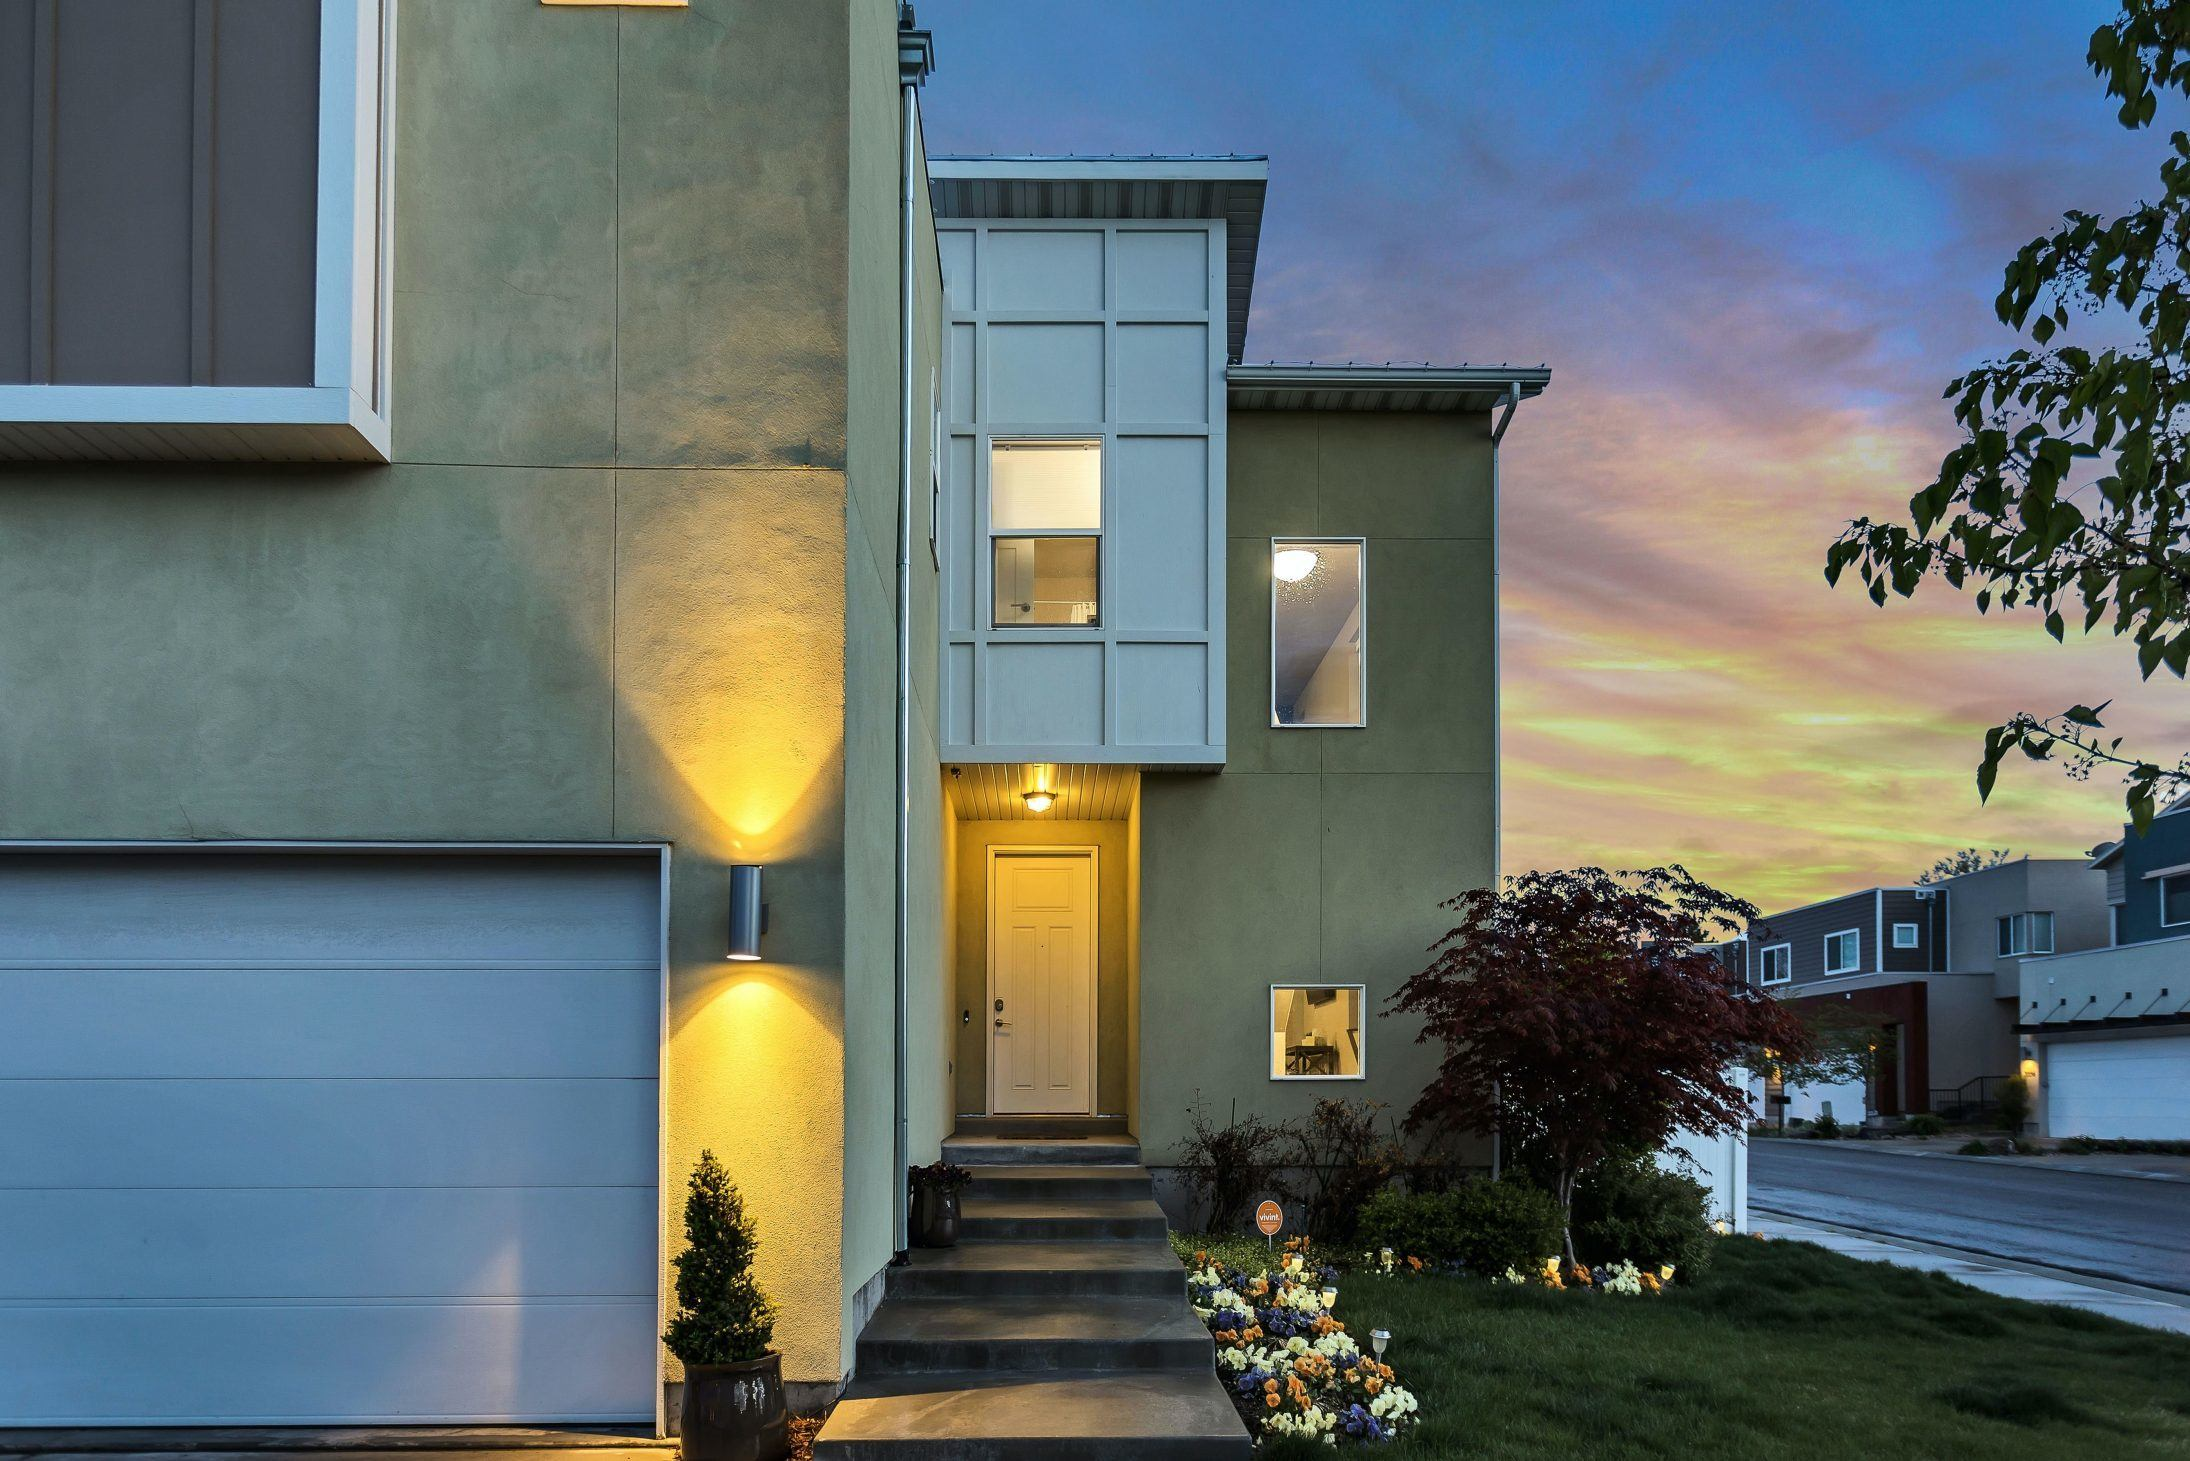 5 Simple and Affordable Ways to Add Curb Appeal to Your Home 2